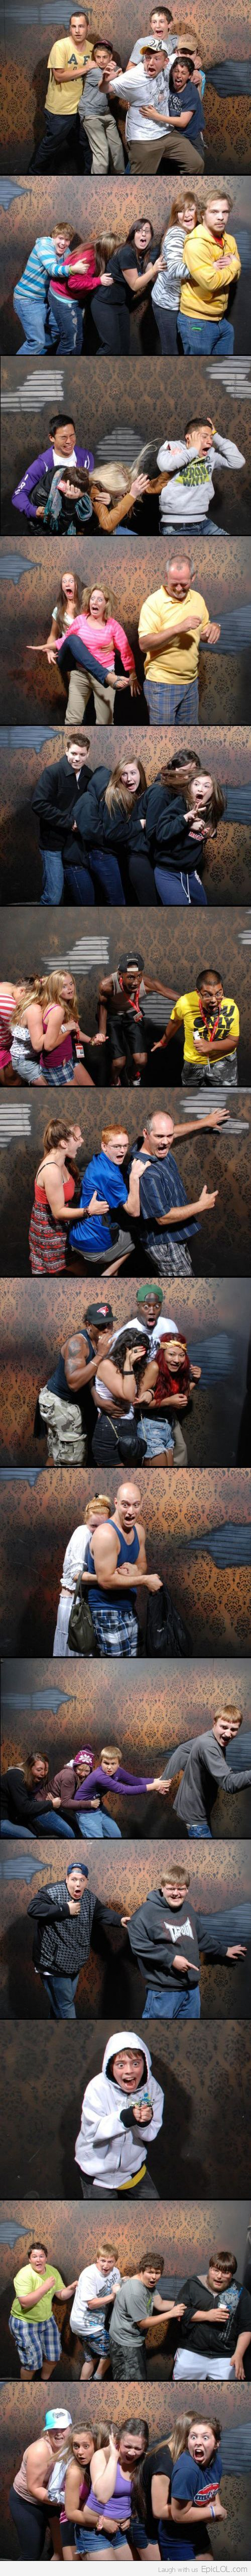 Some scary faces in haunted house....SO funny!